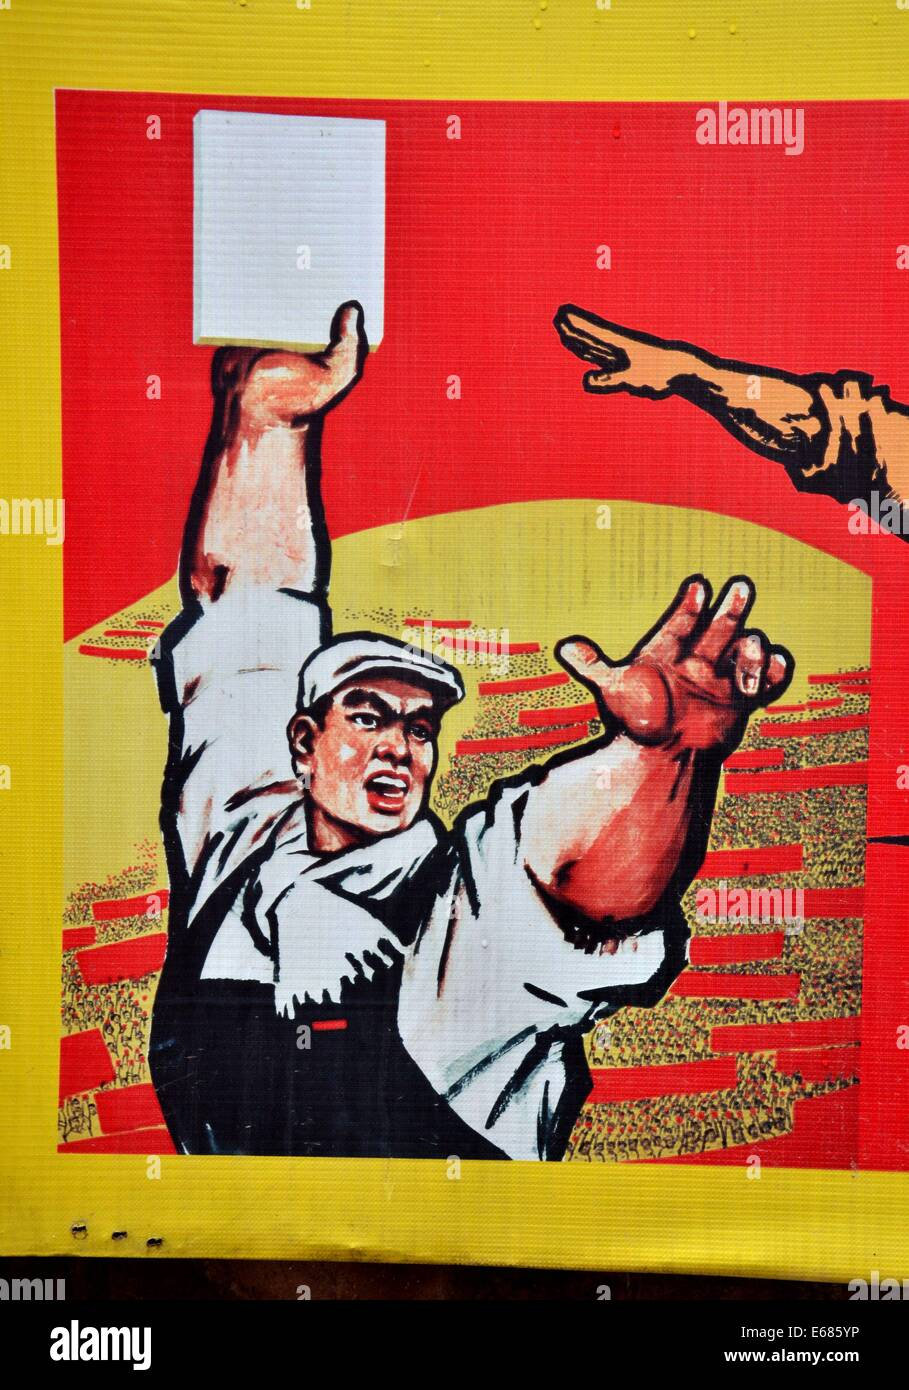 Chinese Communist party workers proletariat propaganda poster - Stock Image